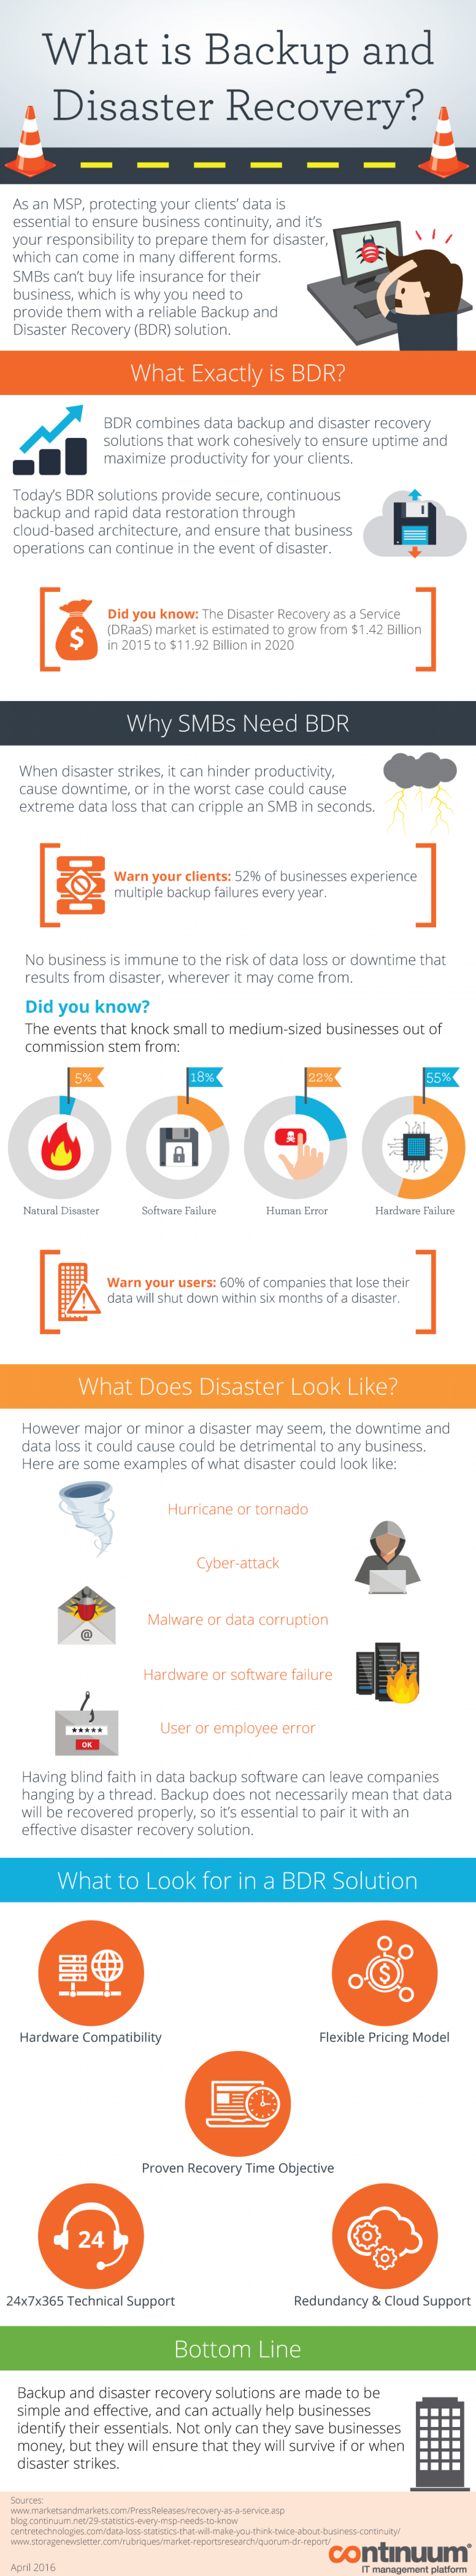 What is Backup and Disaster Recovery (BDR)? Infographic